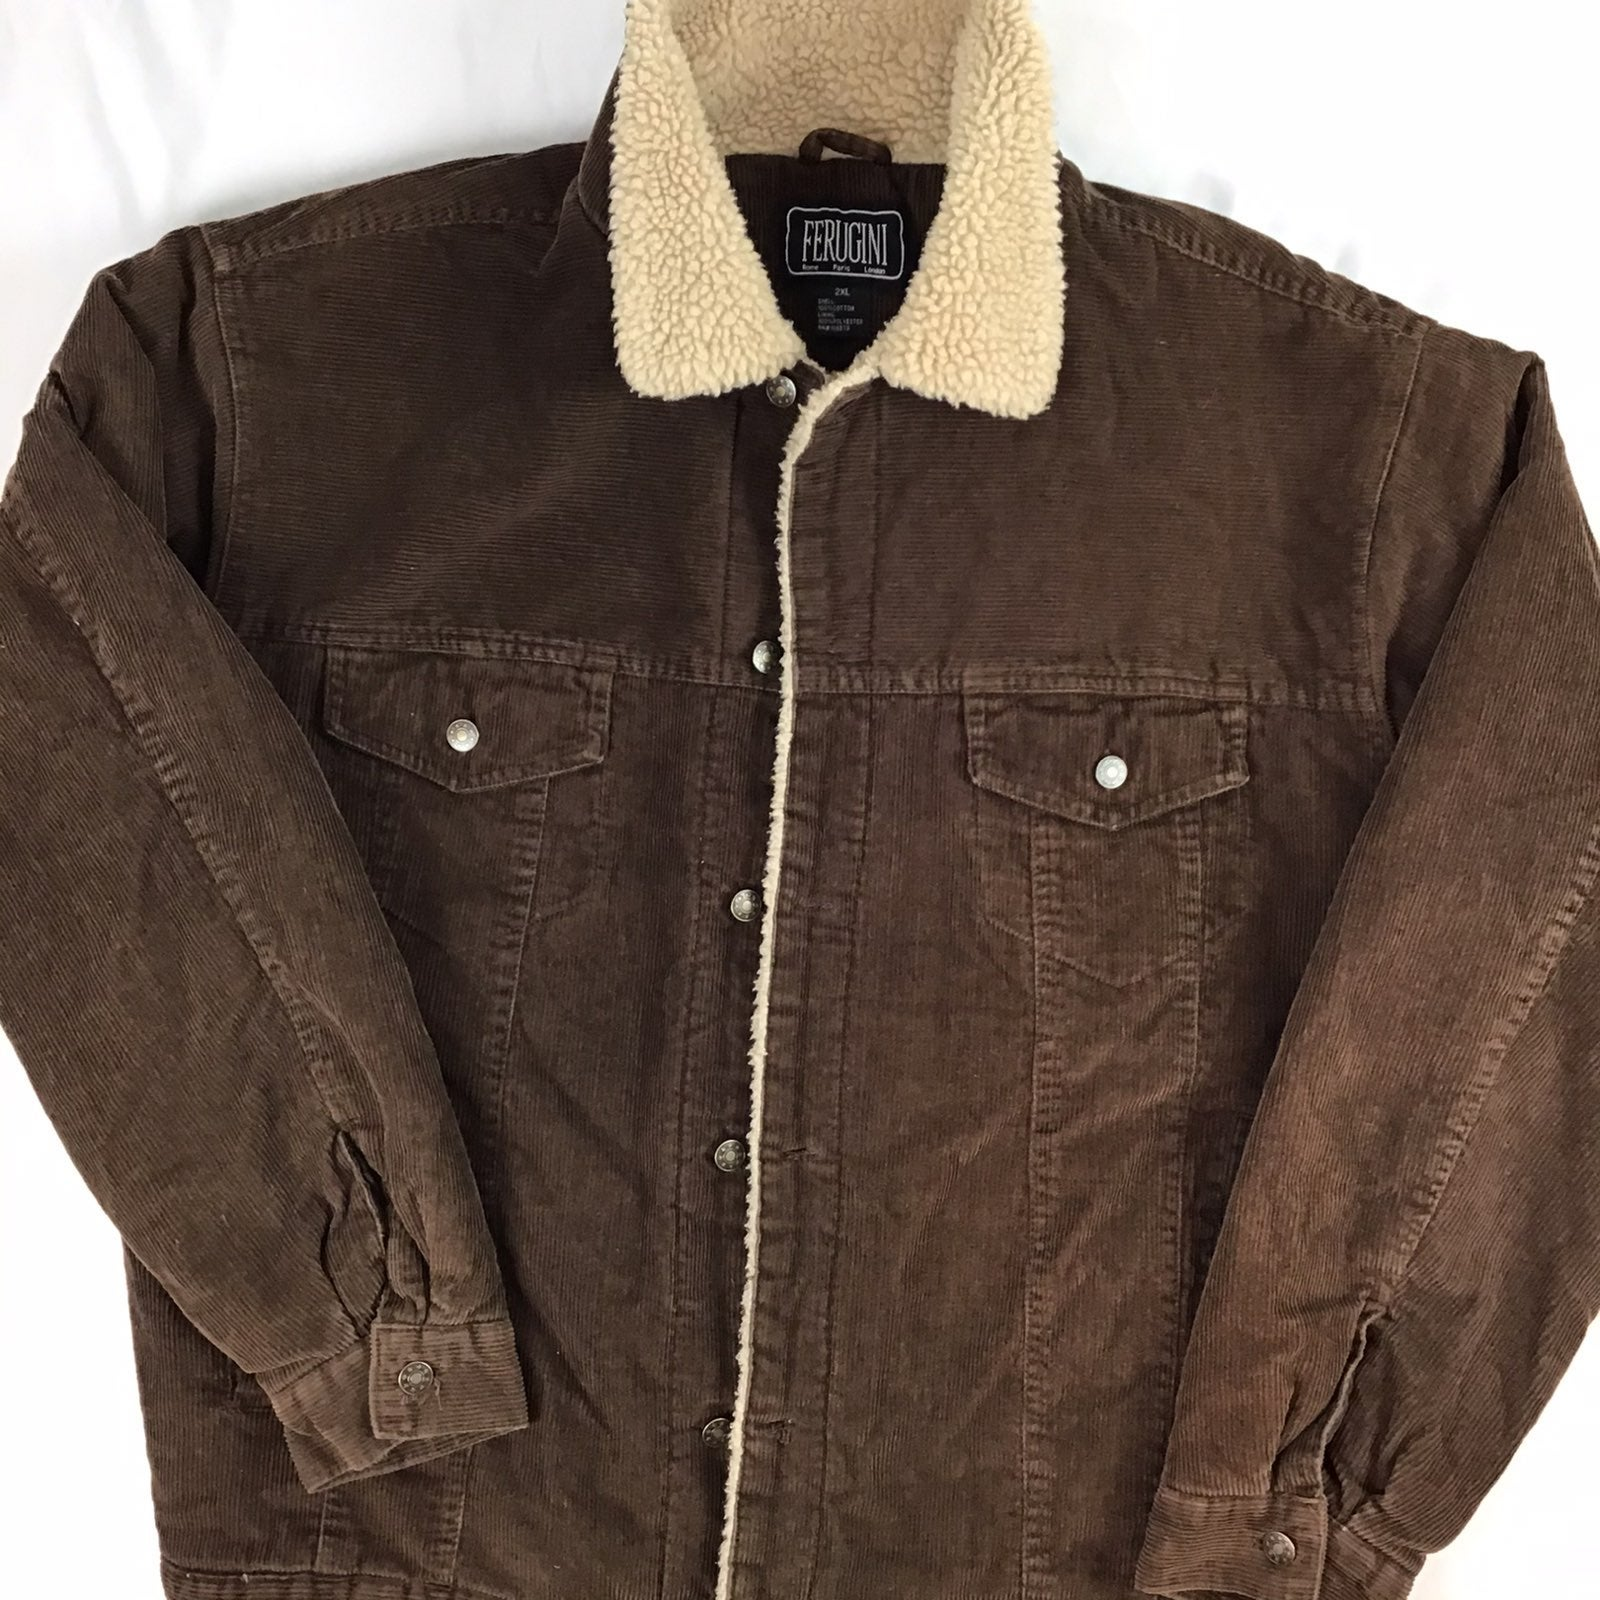 Brown corduroy button up Sherpa.